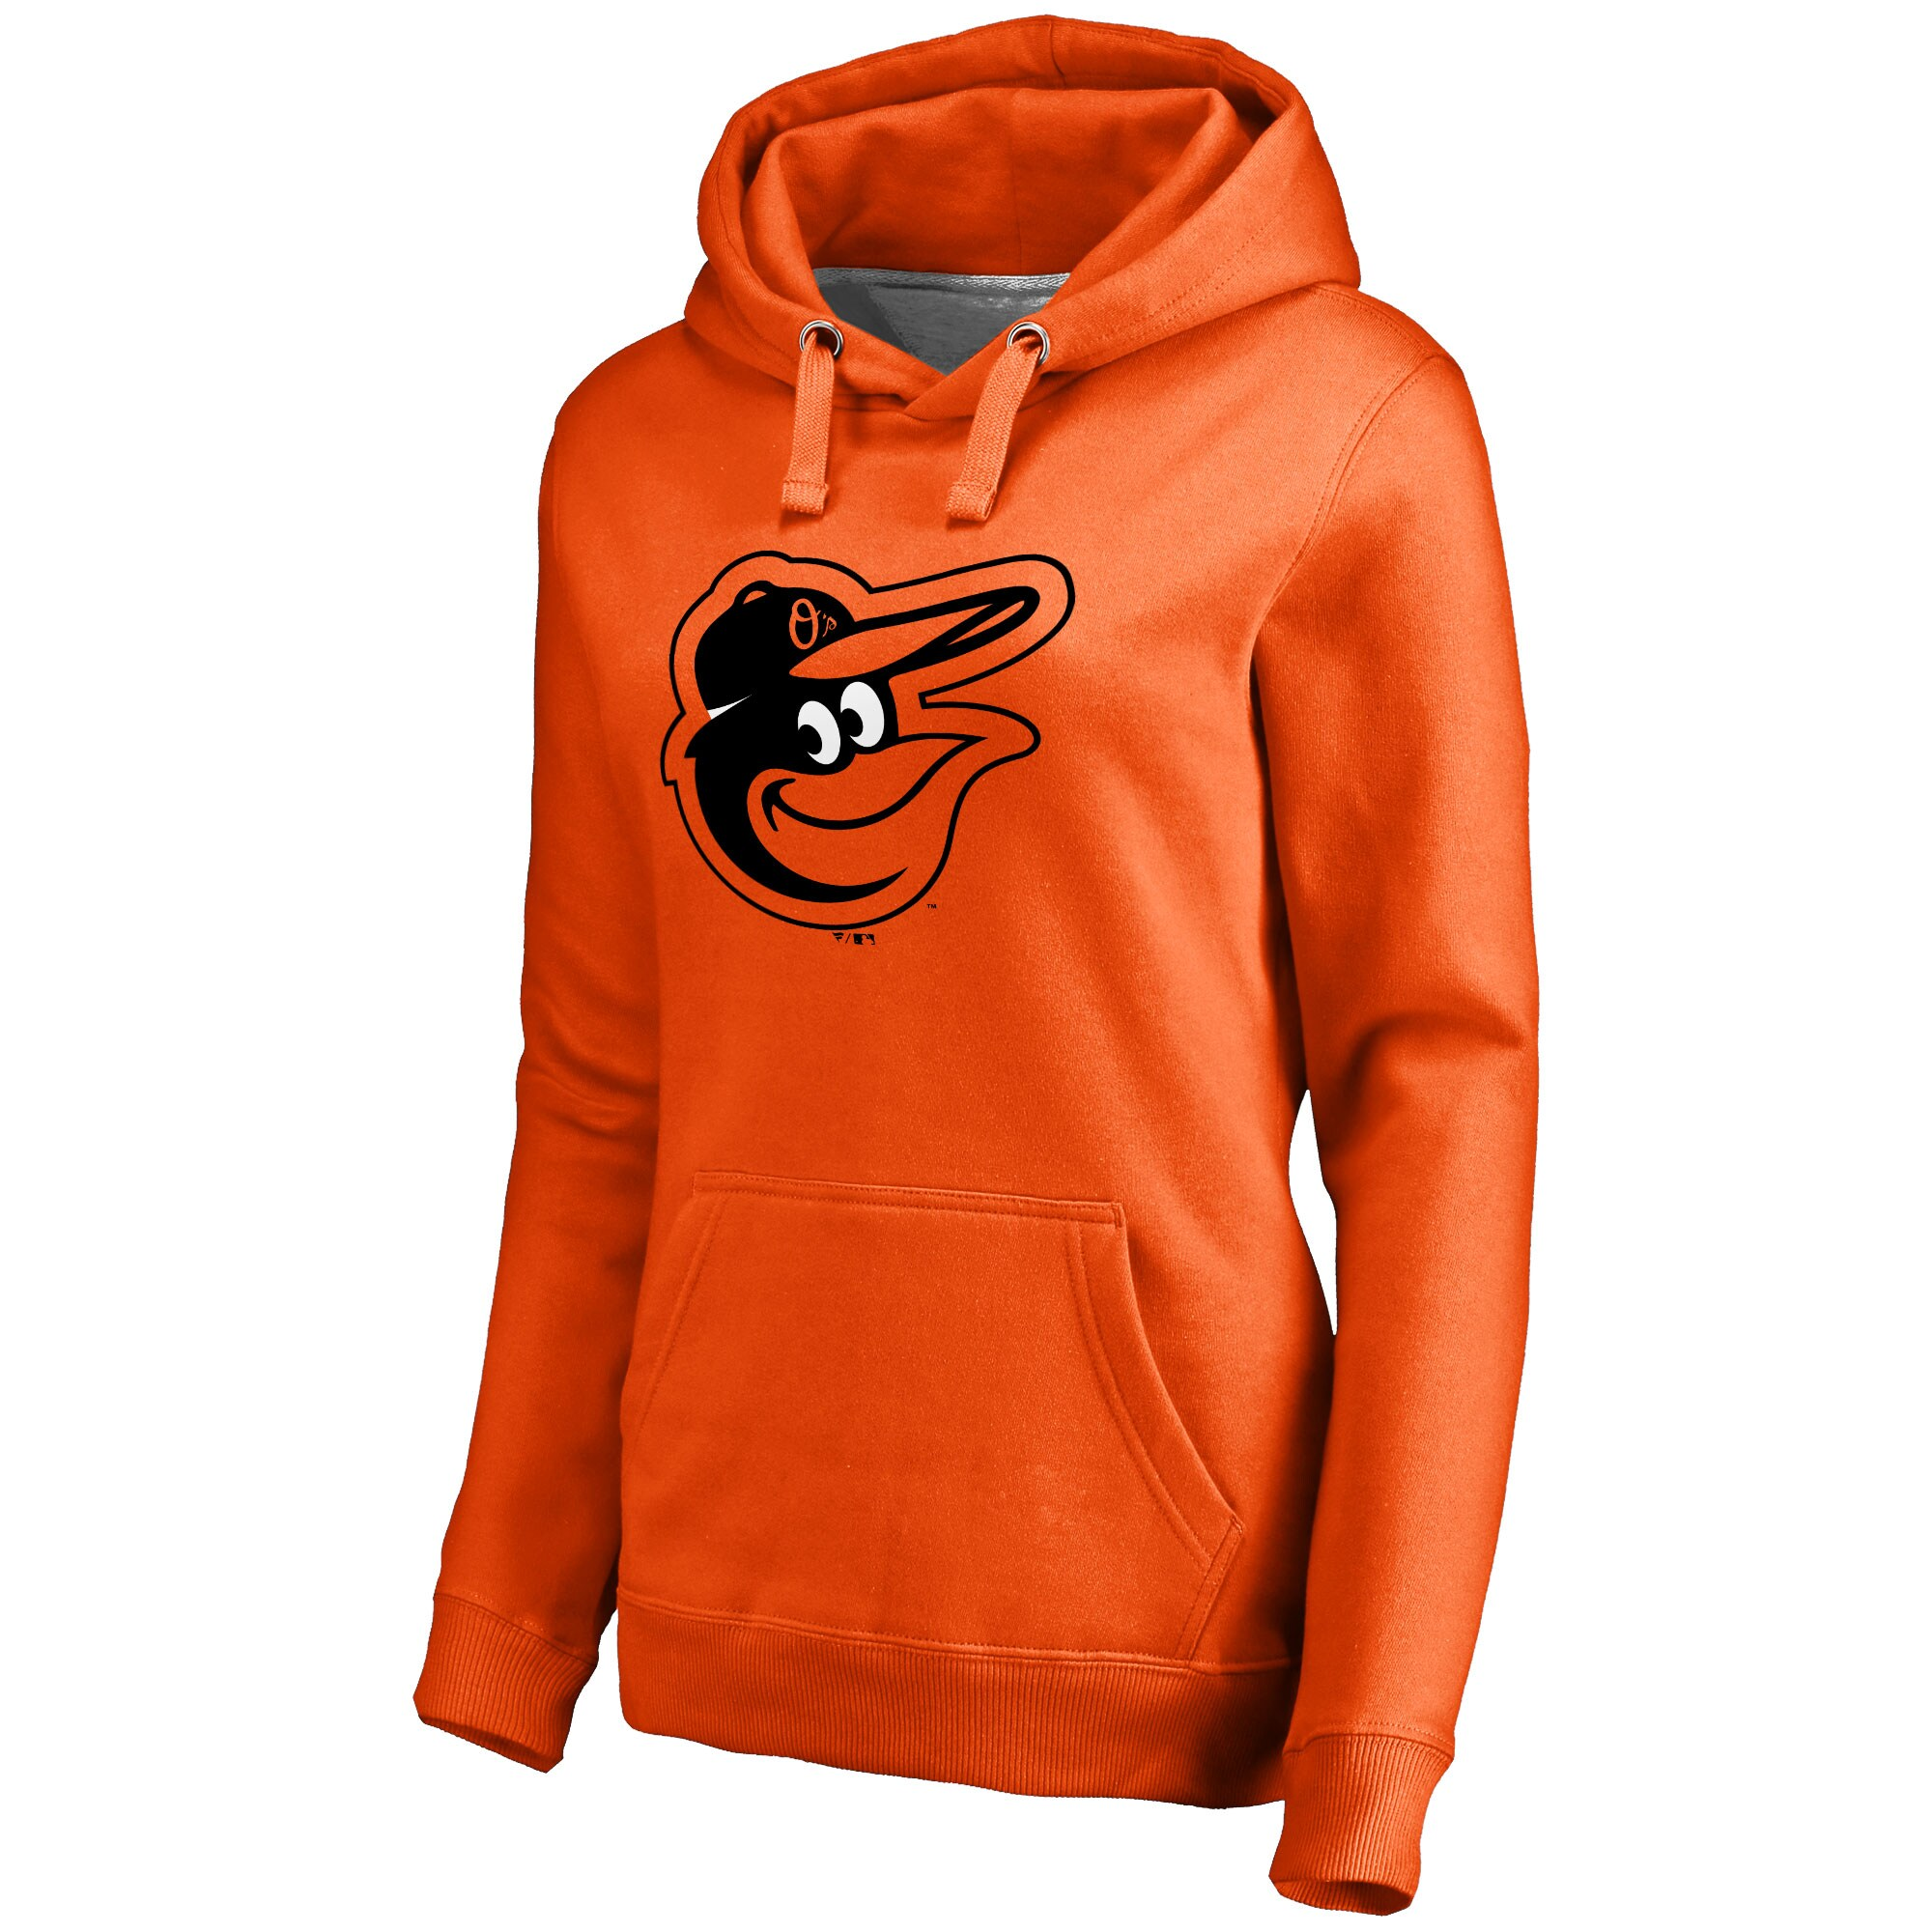 Baltimore Orioles Women's Secondary Color Primary Logo Pullover Hoodie - Orange